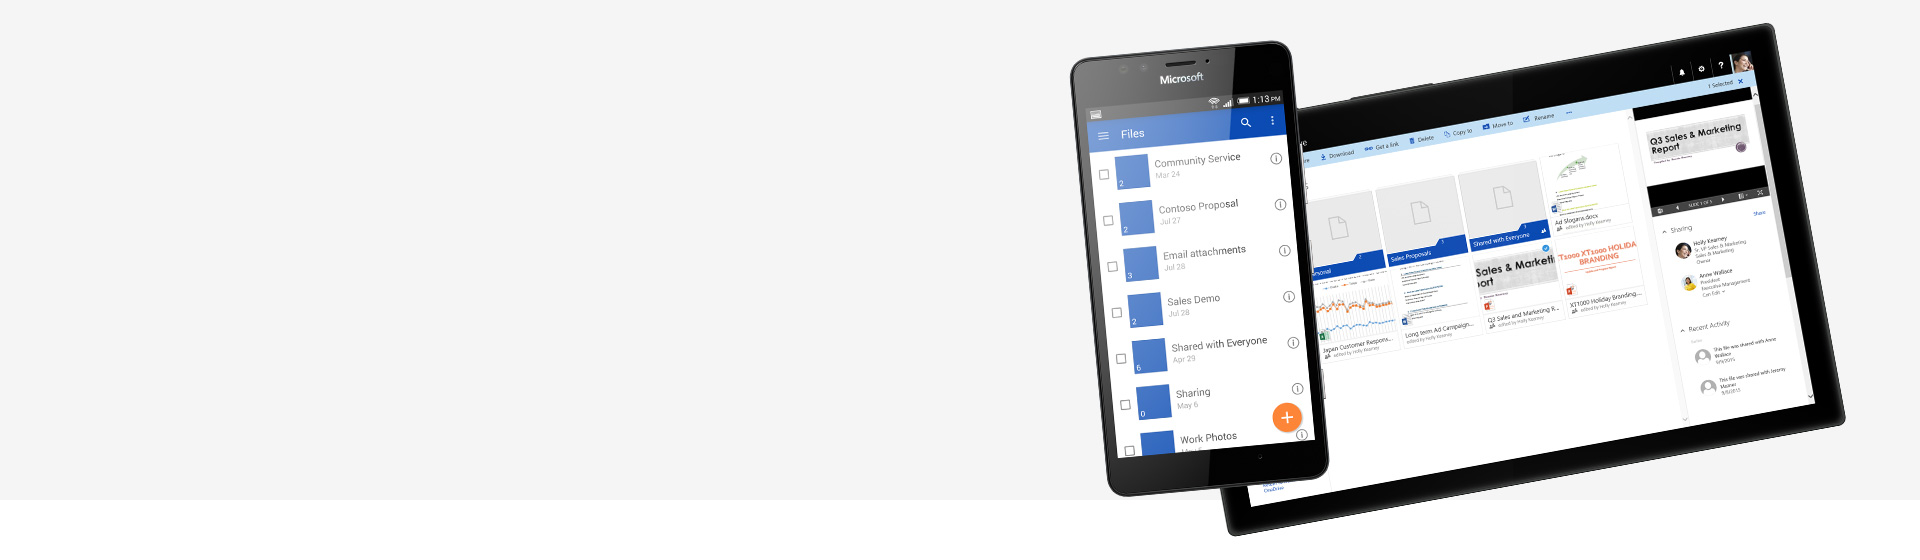 how to turn off onedrive in word document